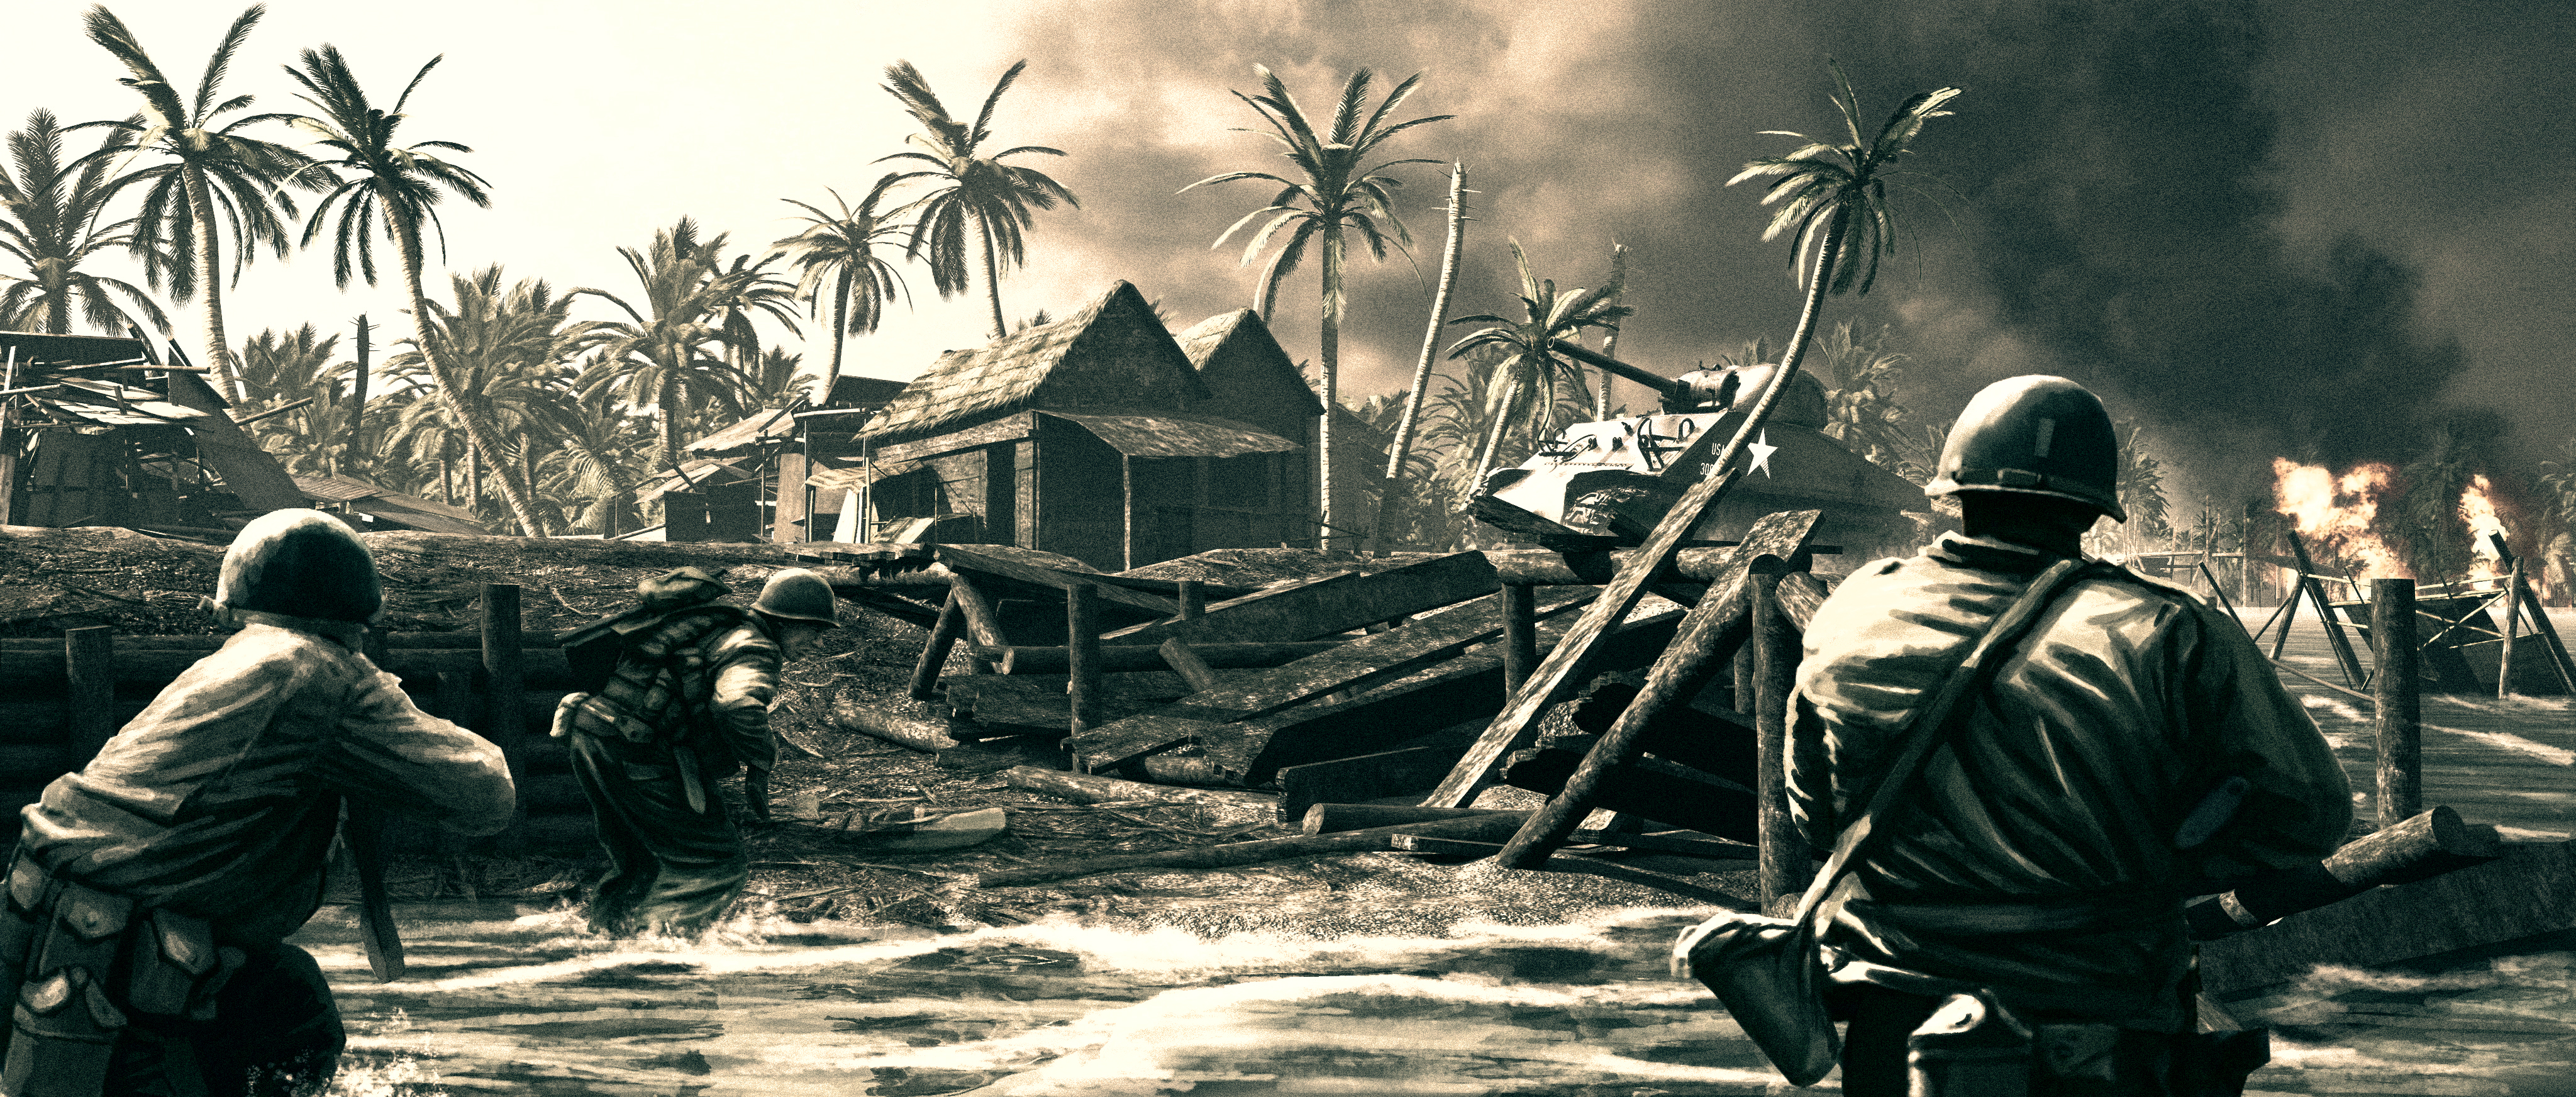 Highlander_WW2_Manila_Beach_Assault